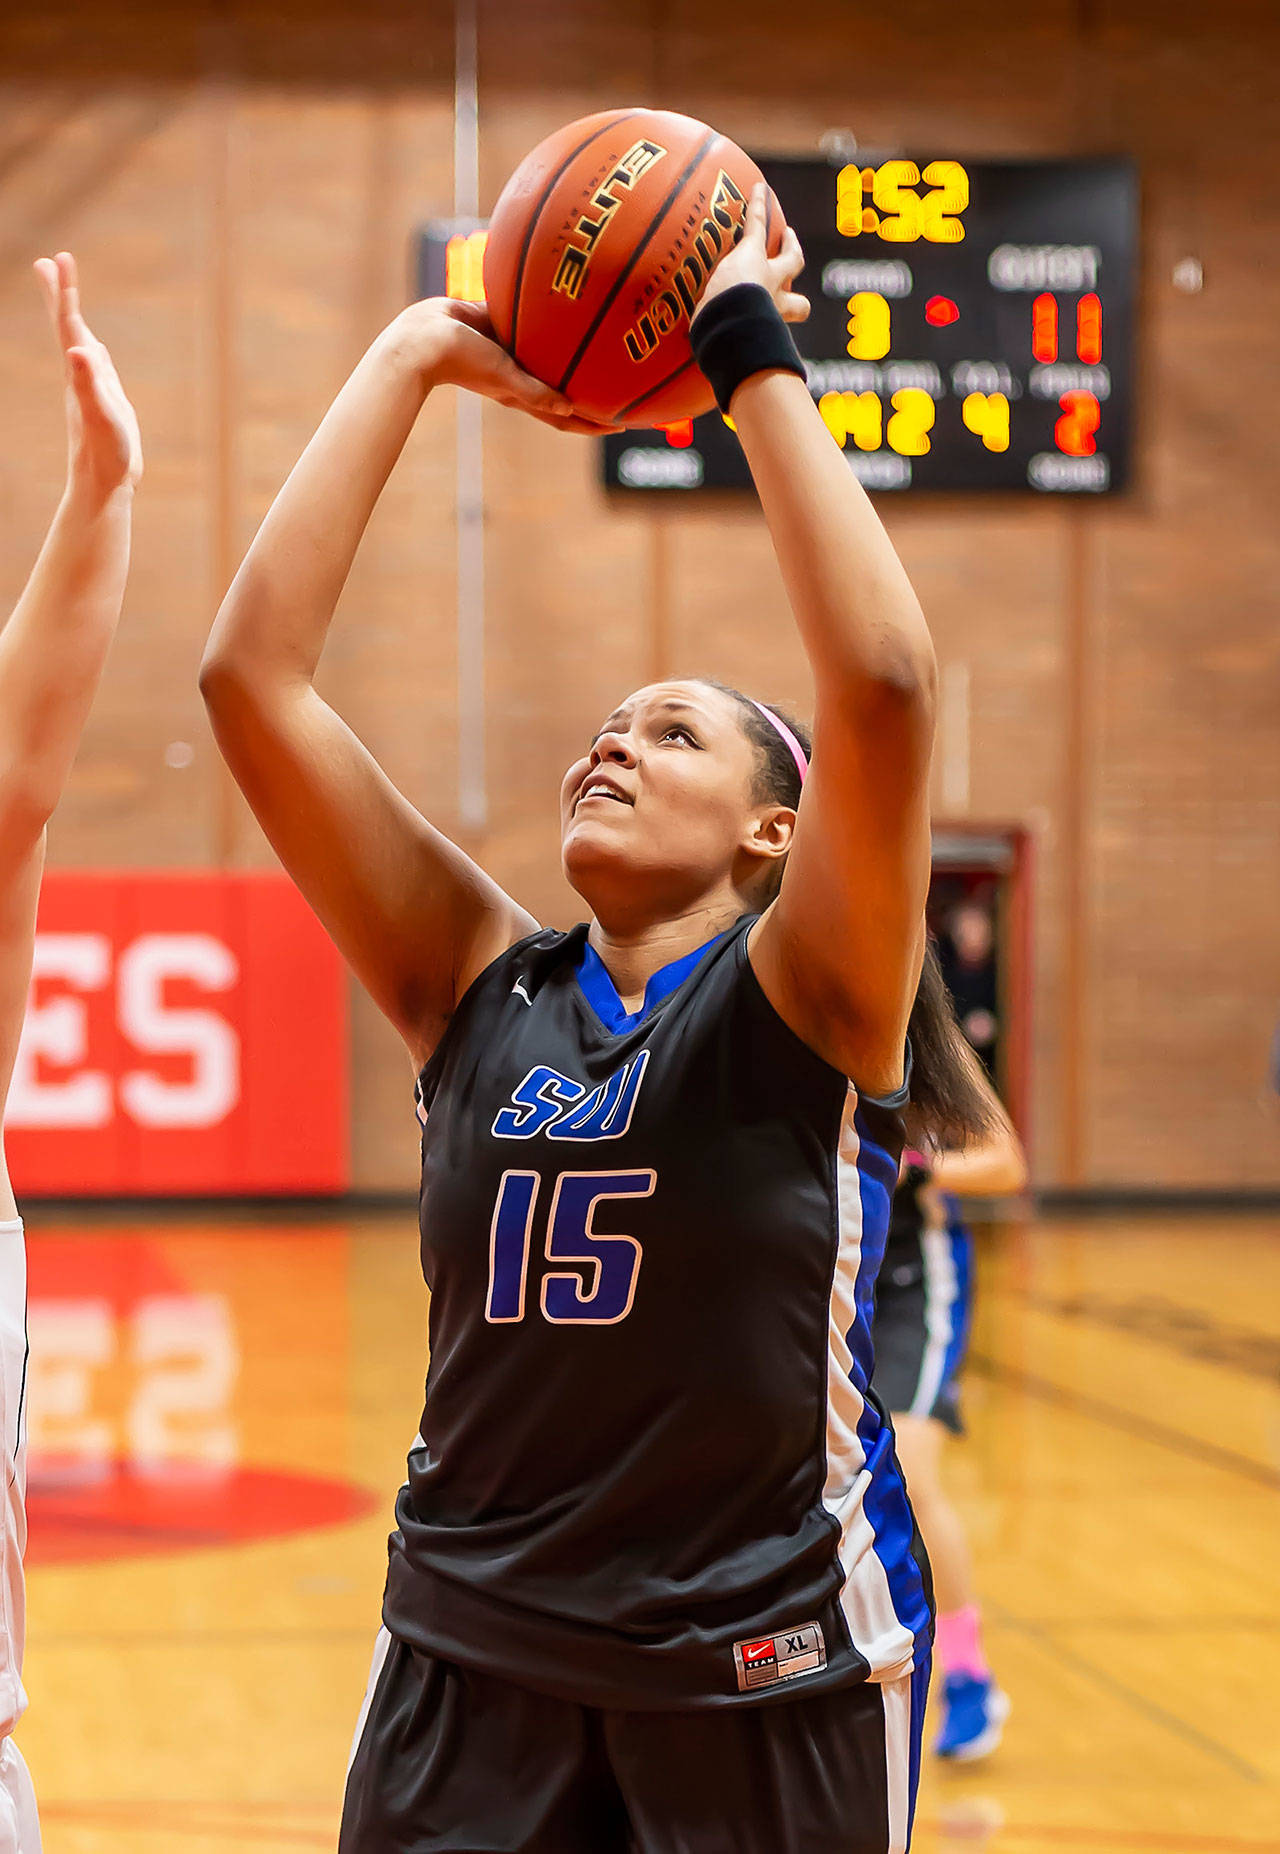 Arianna Briggs scored 2 of her team-high 6 points Friday in Coupeville.(Photo by John Fisken)